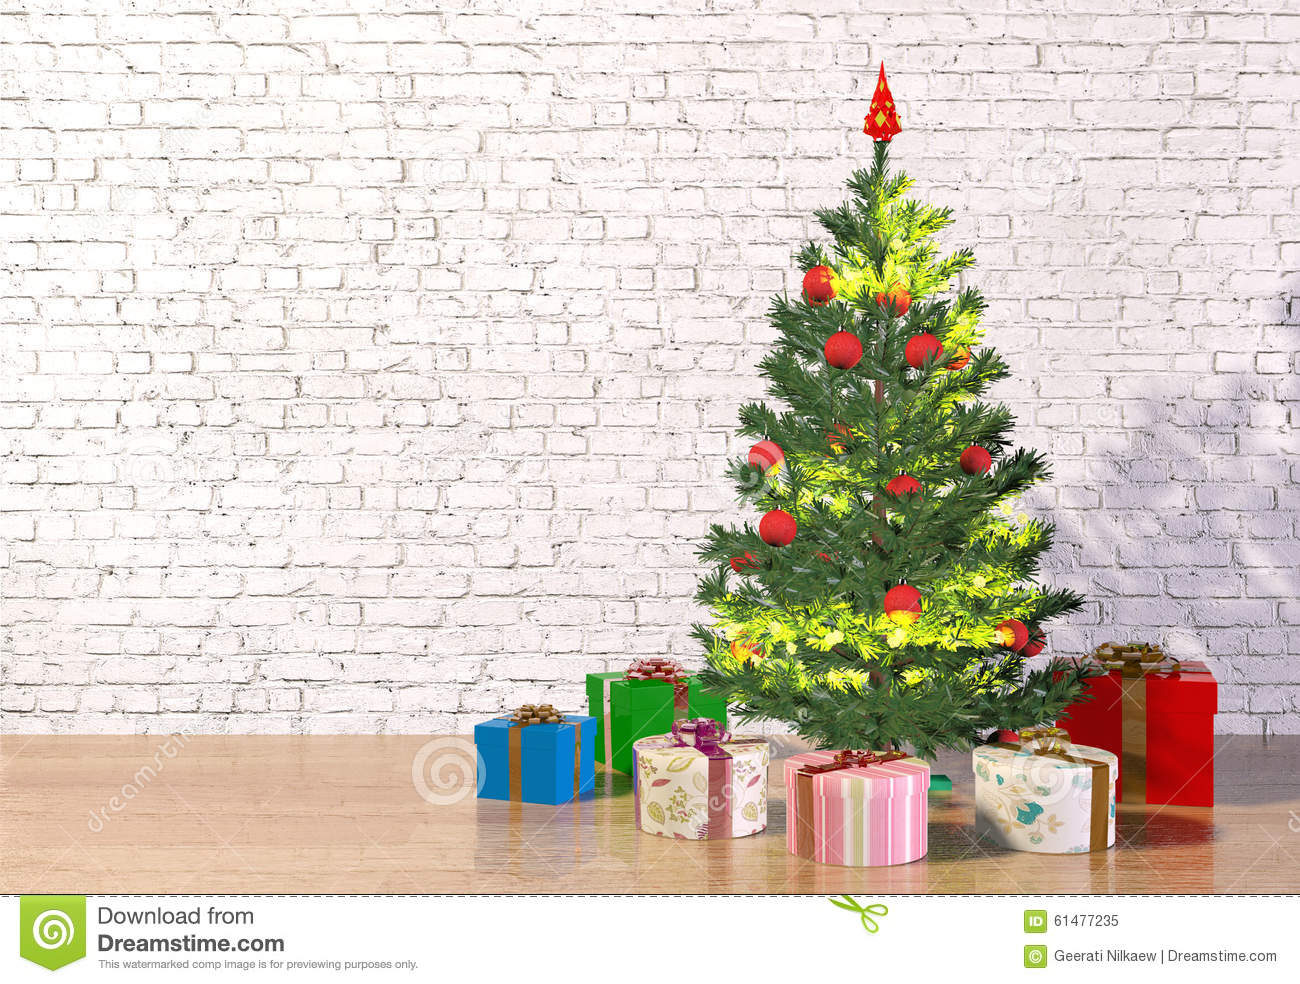 Christmas tree in white room